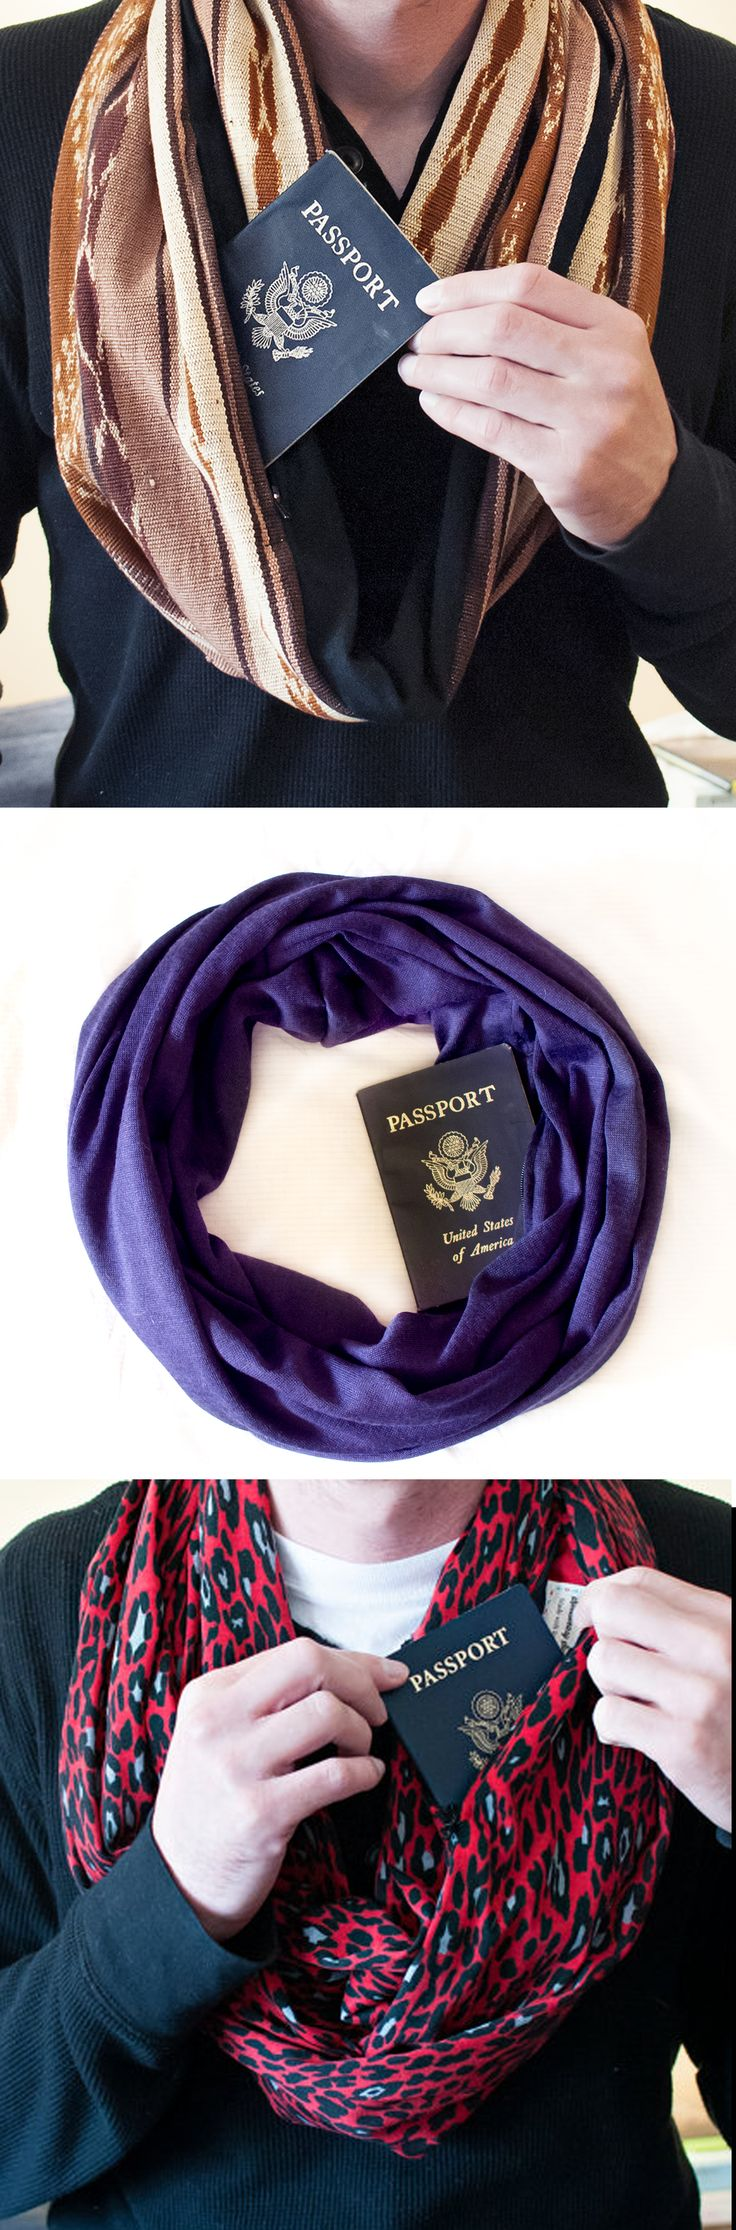 No pickpockets here! Hide your passport & money when you travel in a very clever way with Speakeasy Travel Scarves >> Use code GETLUCKY & get 10% off of any of our travel scarves today (3/17/15) only!